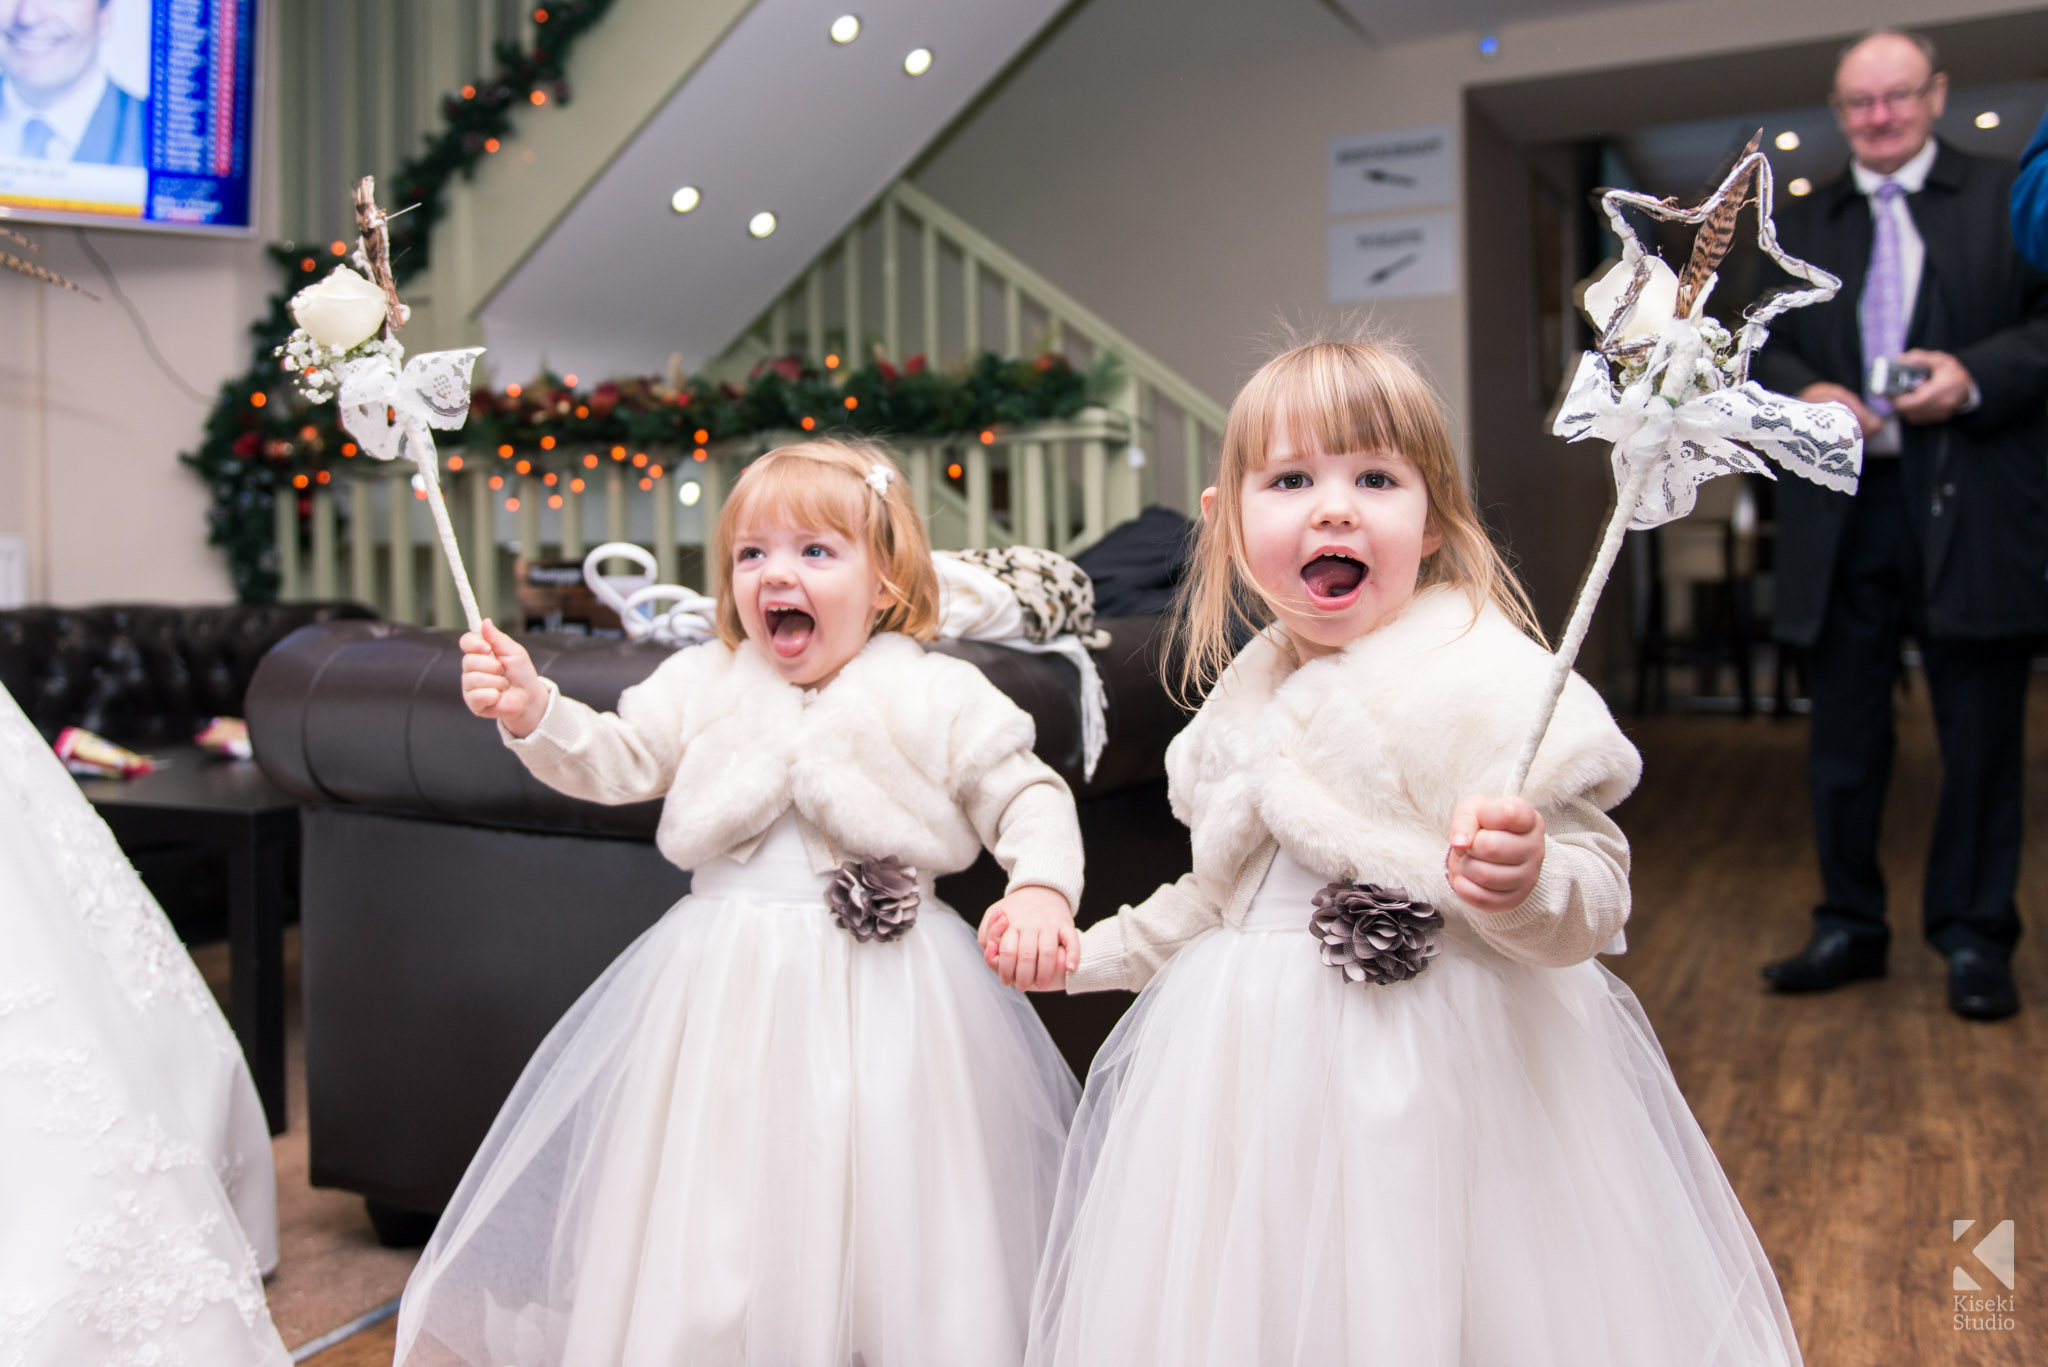 Kids dressed as fairies for the wedding